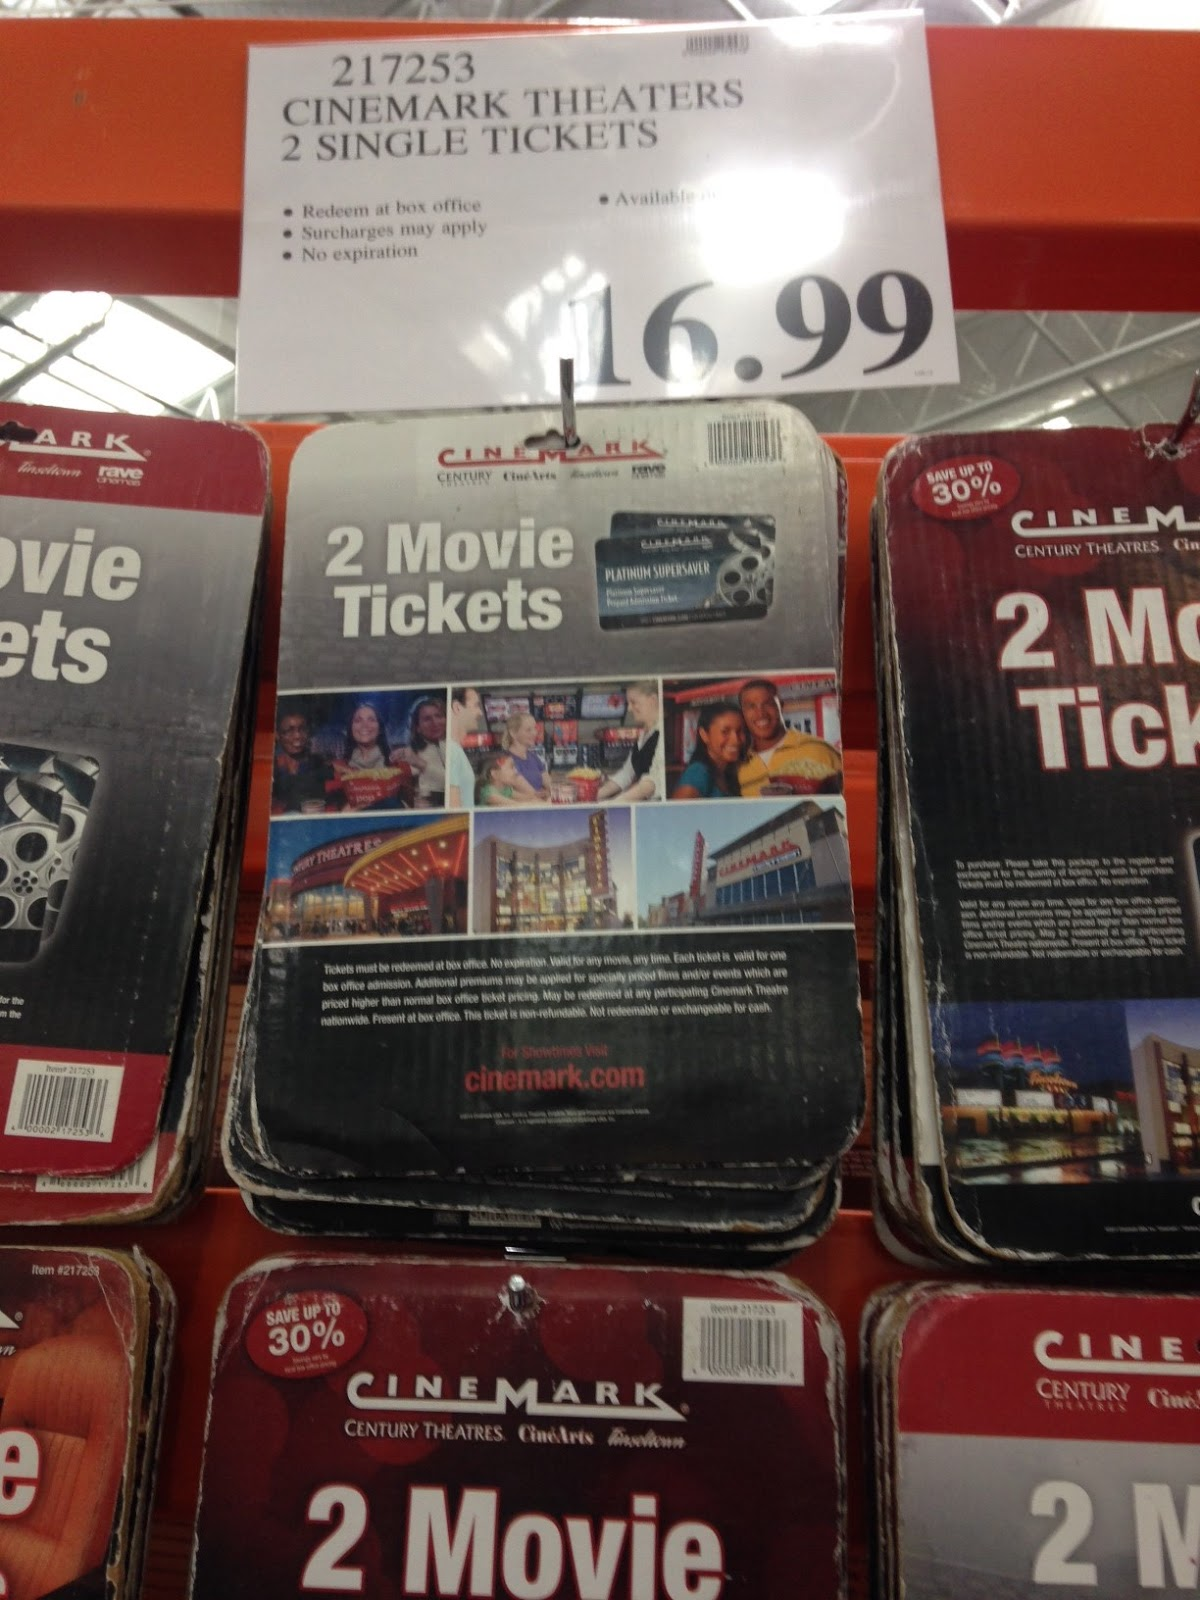 Cinemark Theaters Movie Tickets (qty 2) | Costco Weekender